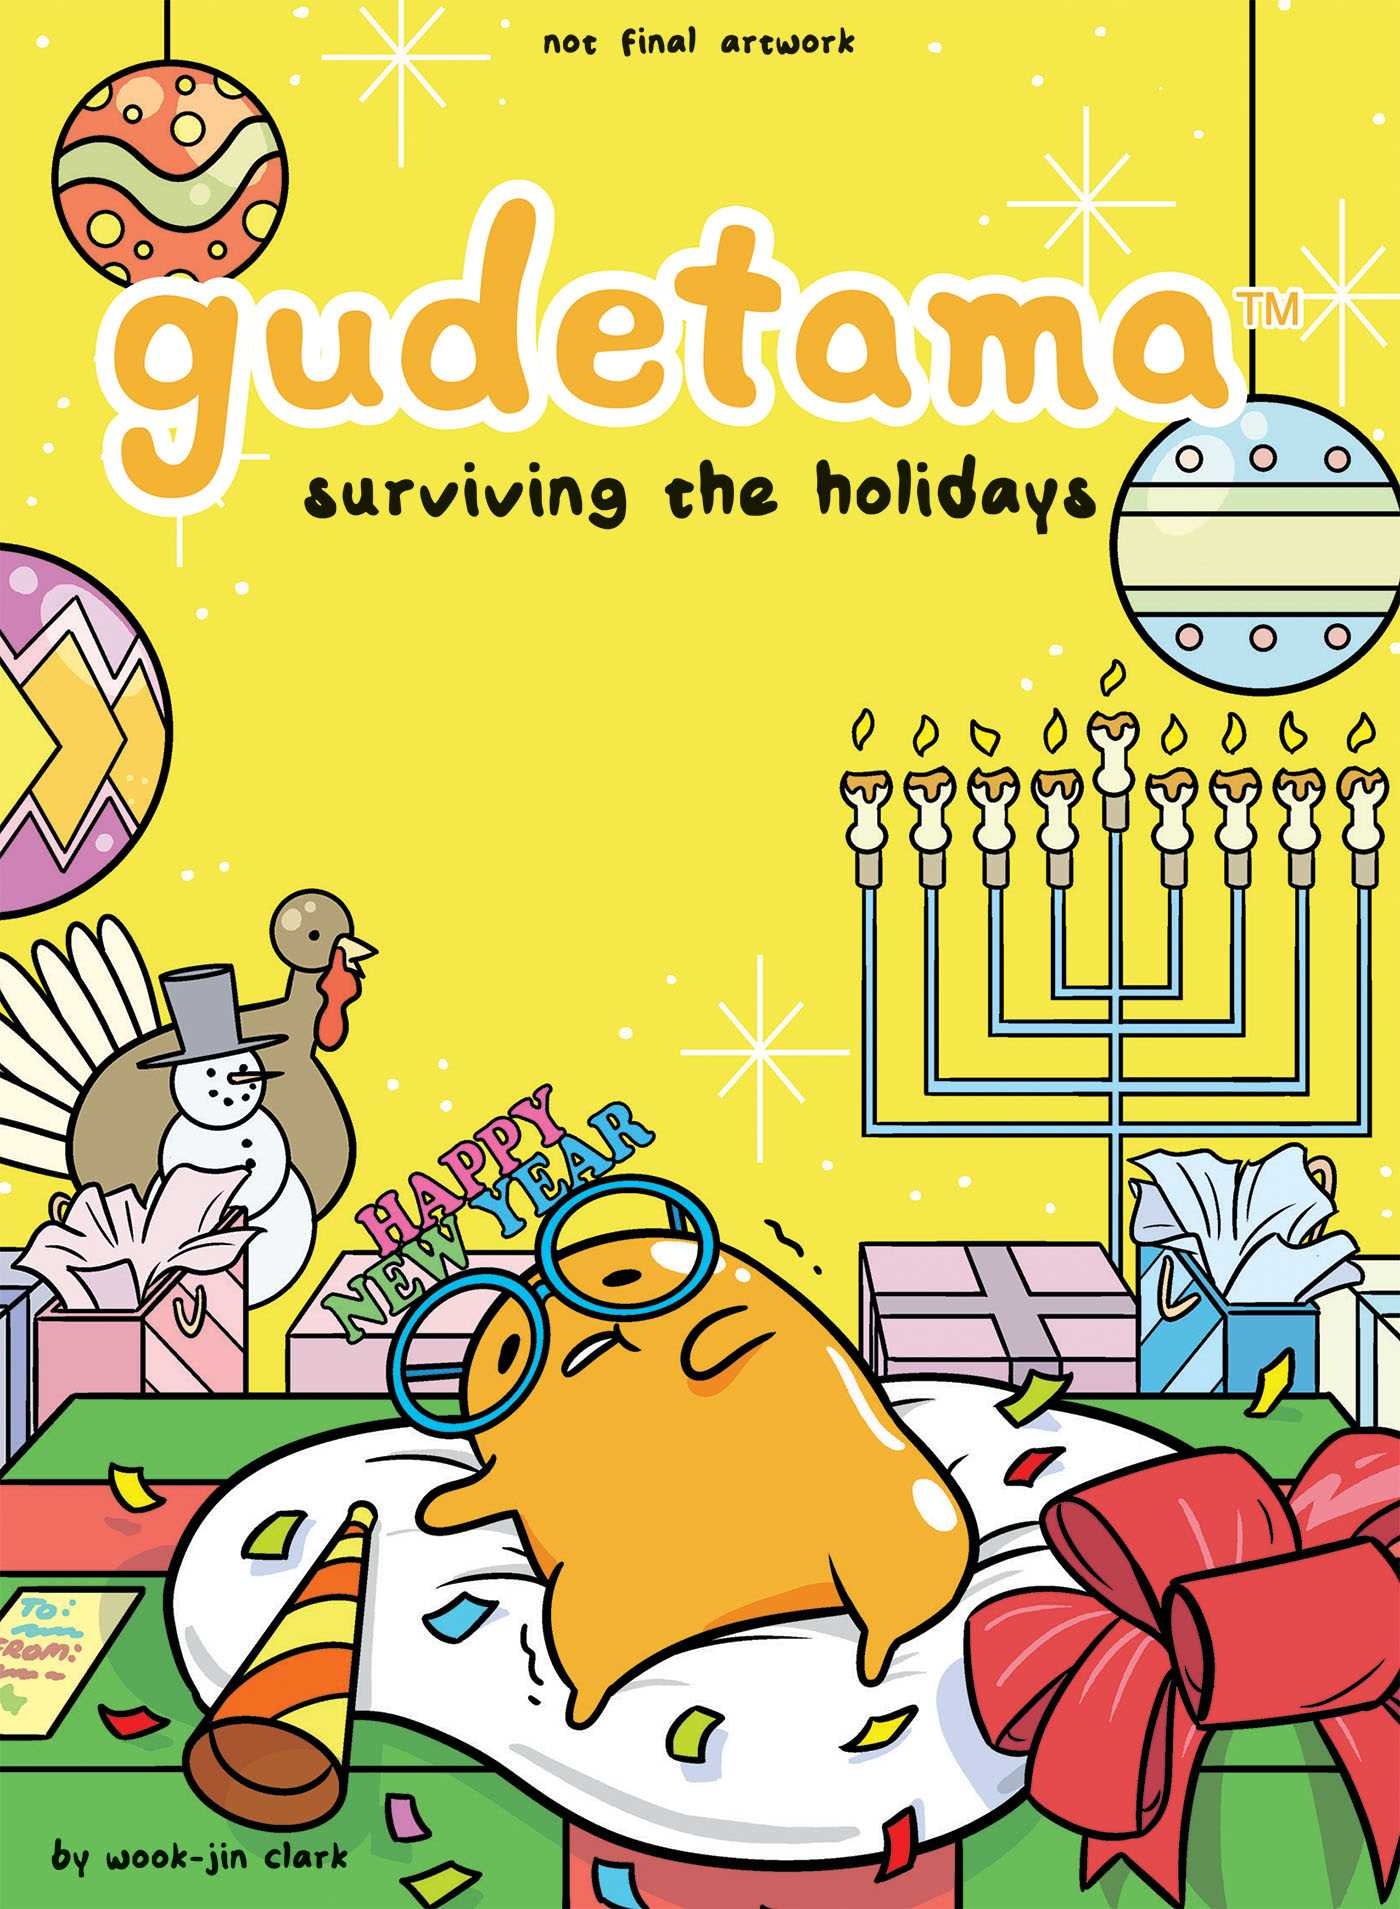 Gudetama, Gudetama: Surviving the Holidays, Wook-Jin Clark, Yellow, Holidays, Christmas, Hanukkah, Advice, Egg, Christmas, Comics